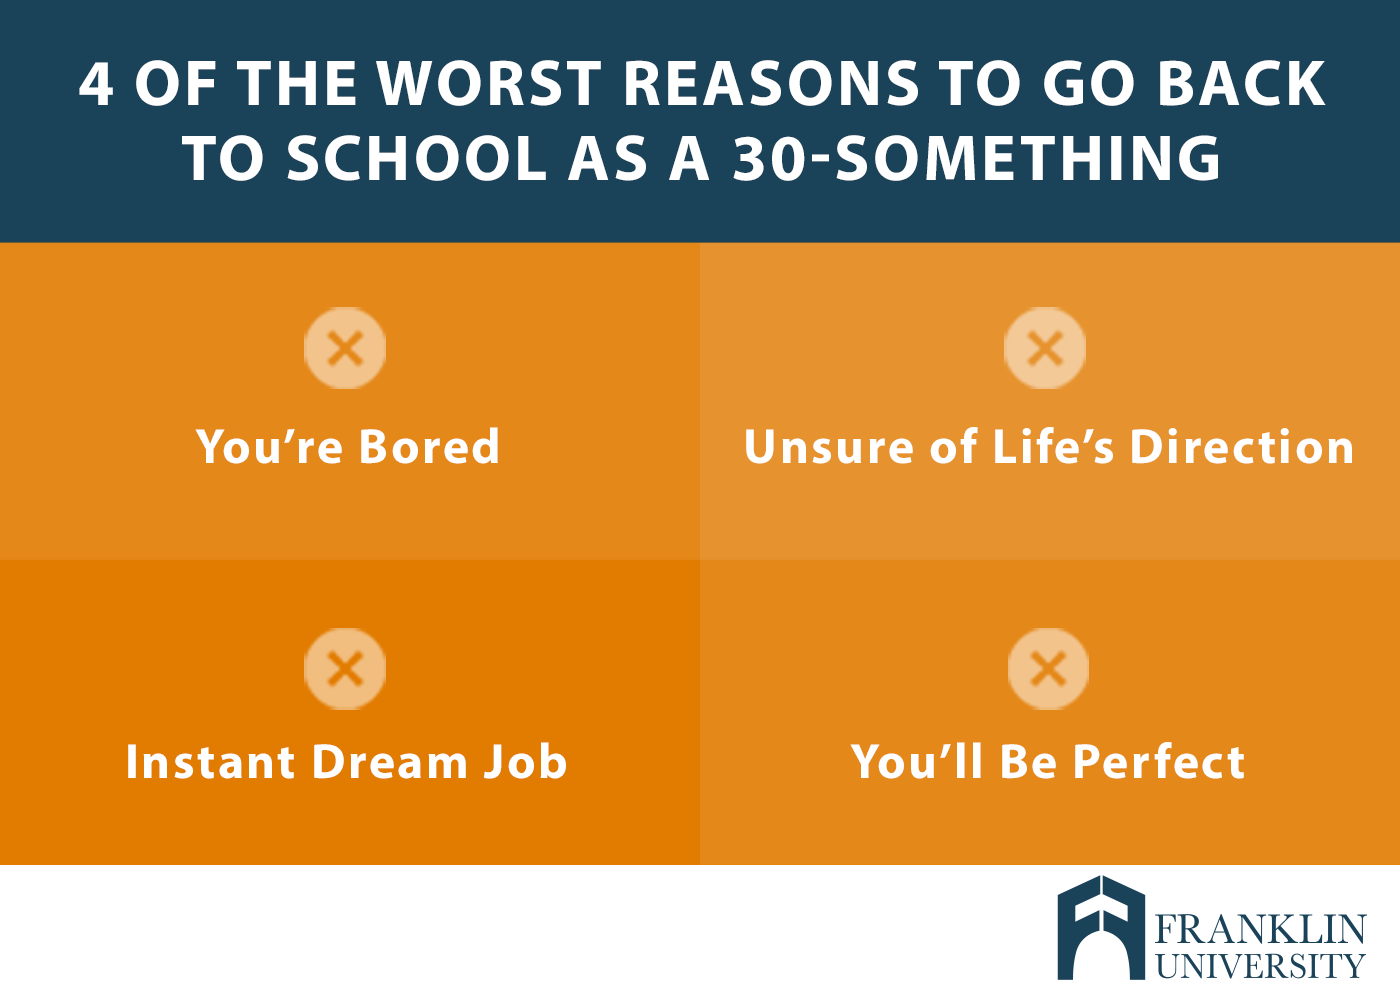 graphic describing 4 of the worst reasons to go back to school as a 30-something